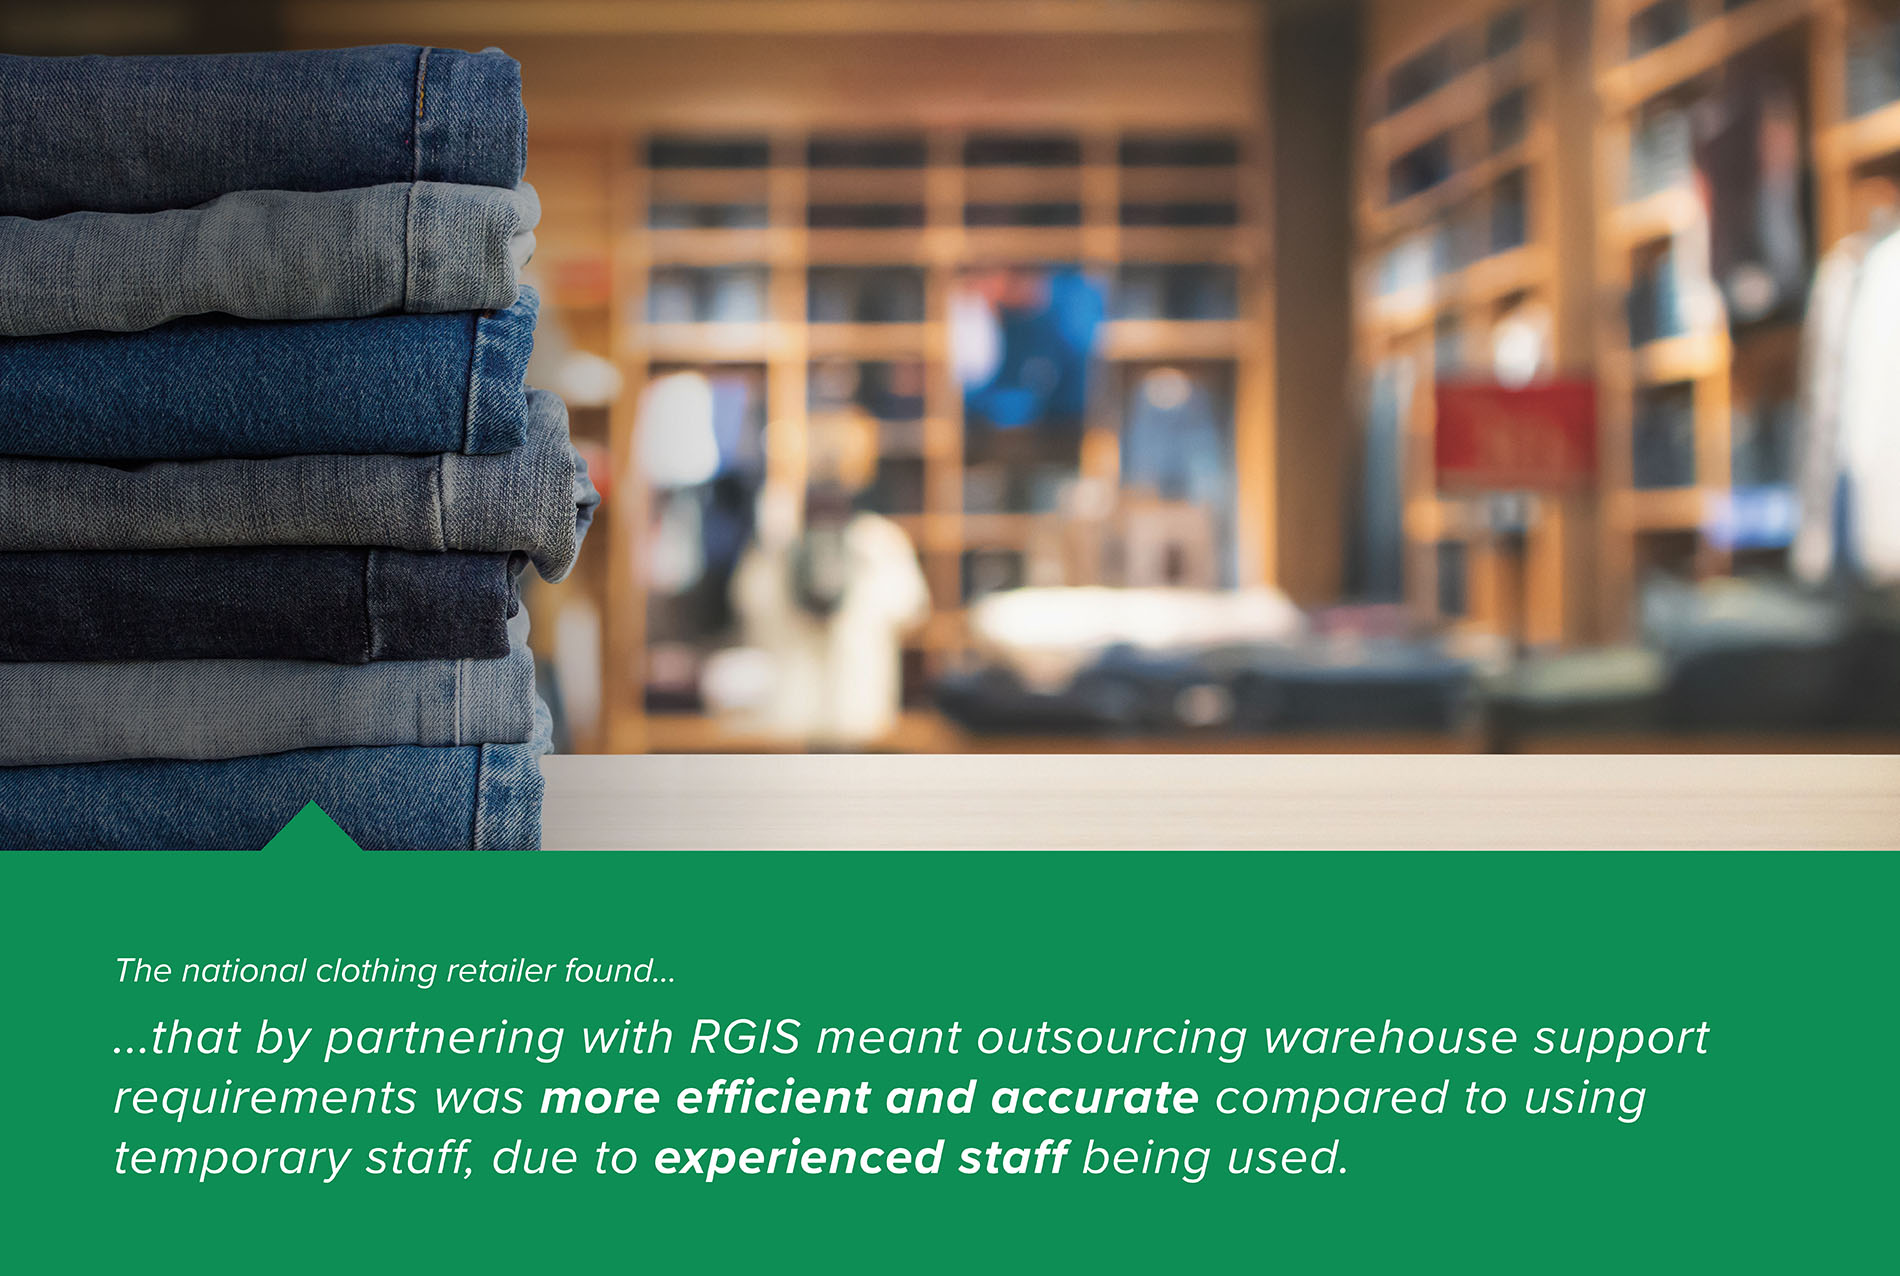 RGIS Case Study Warehouse Staff Support